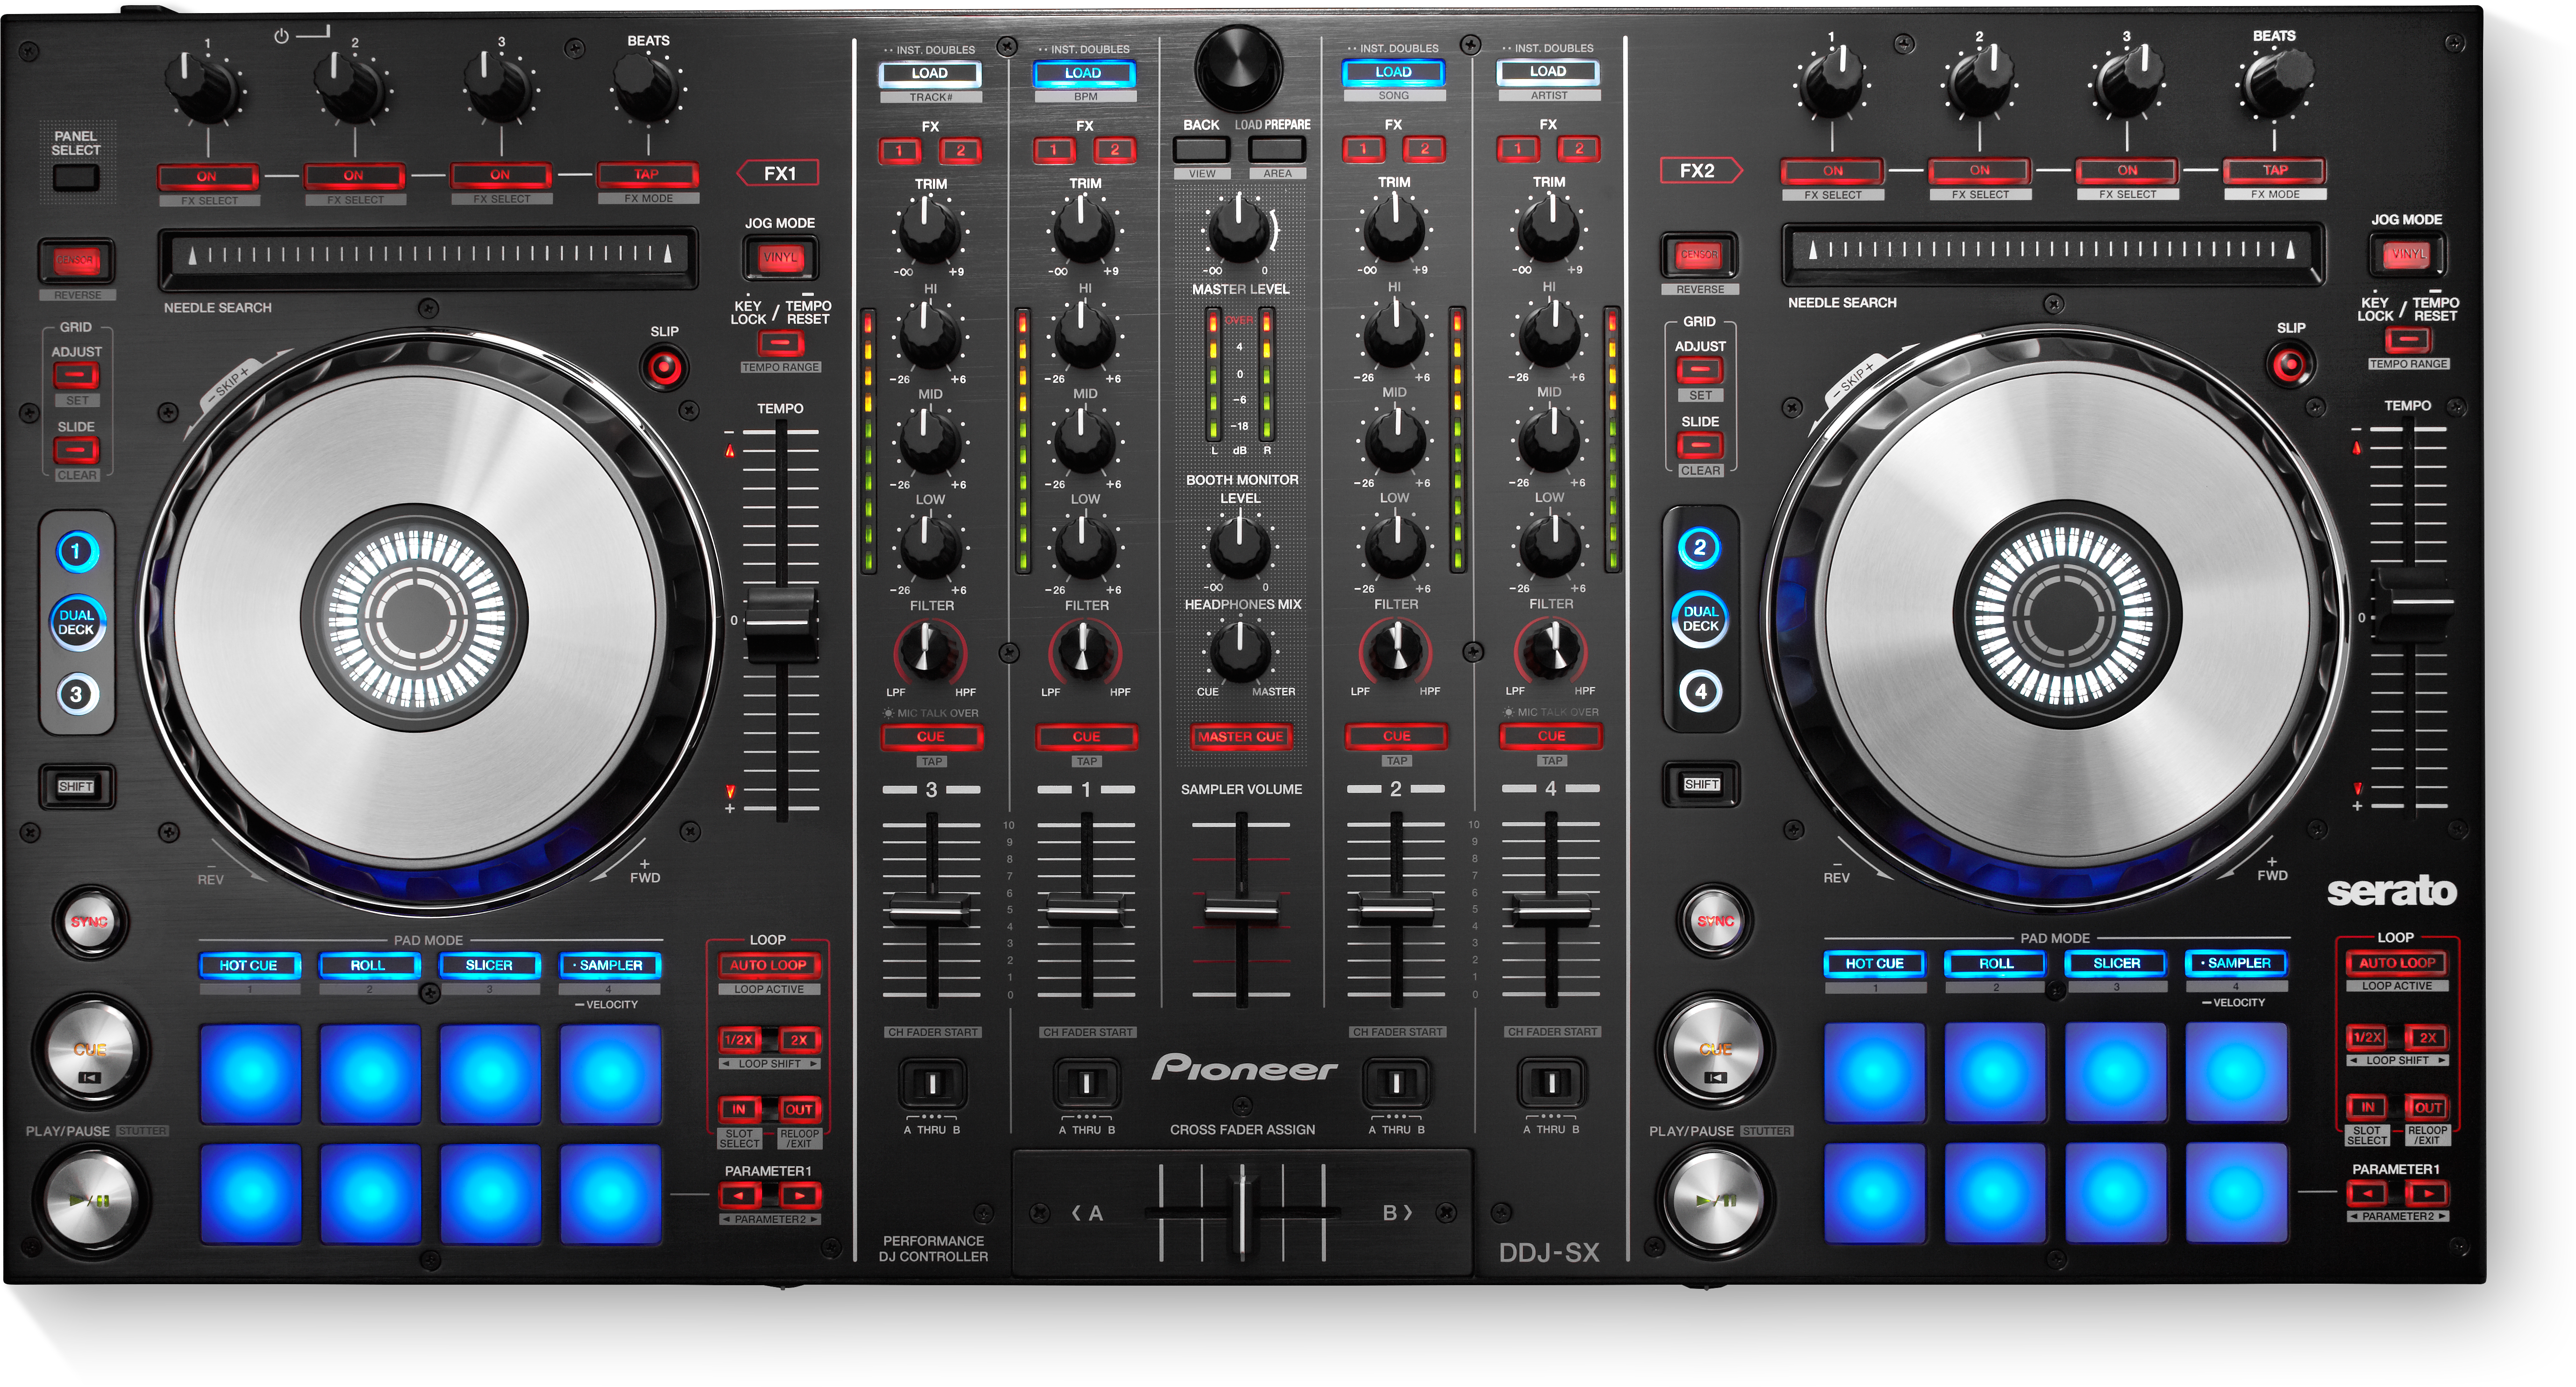 DDJ-SX (archived) 4-channel Serato DJ controller with